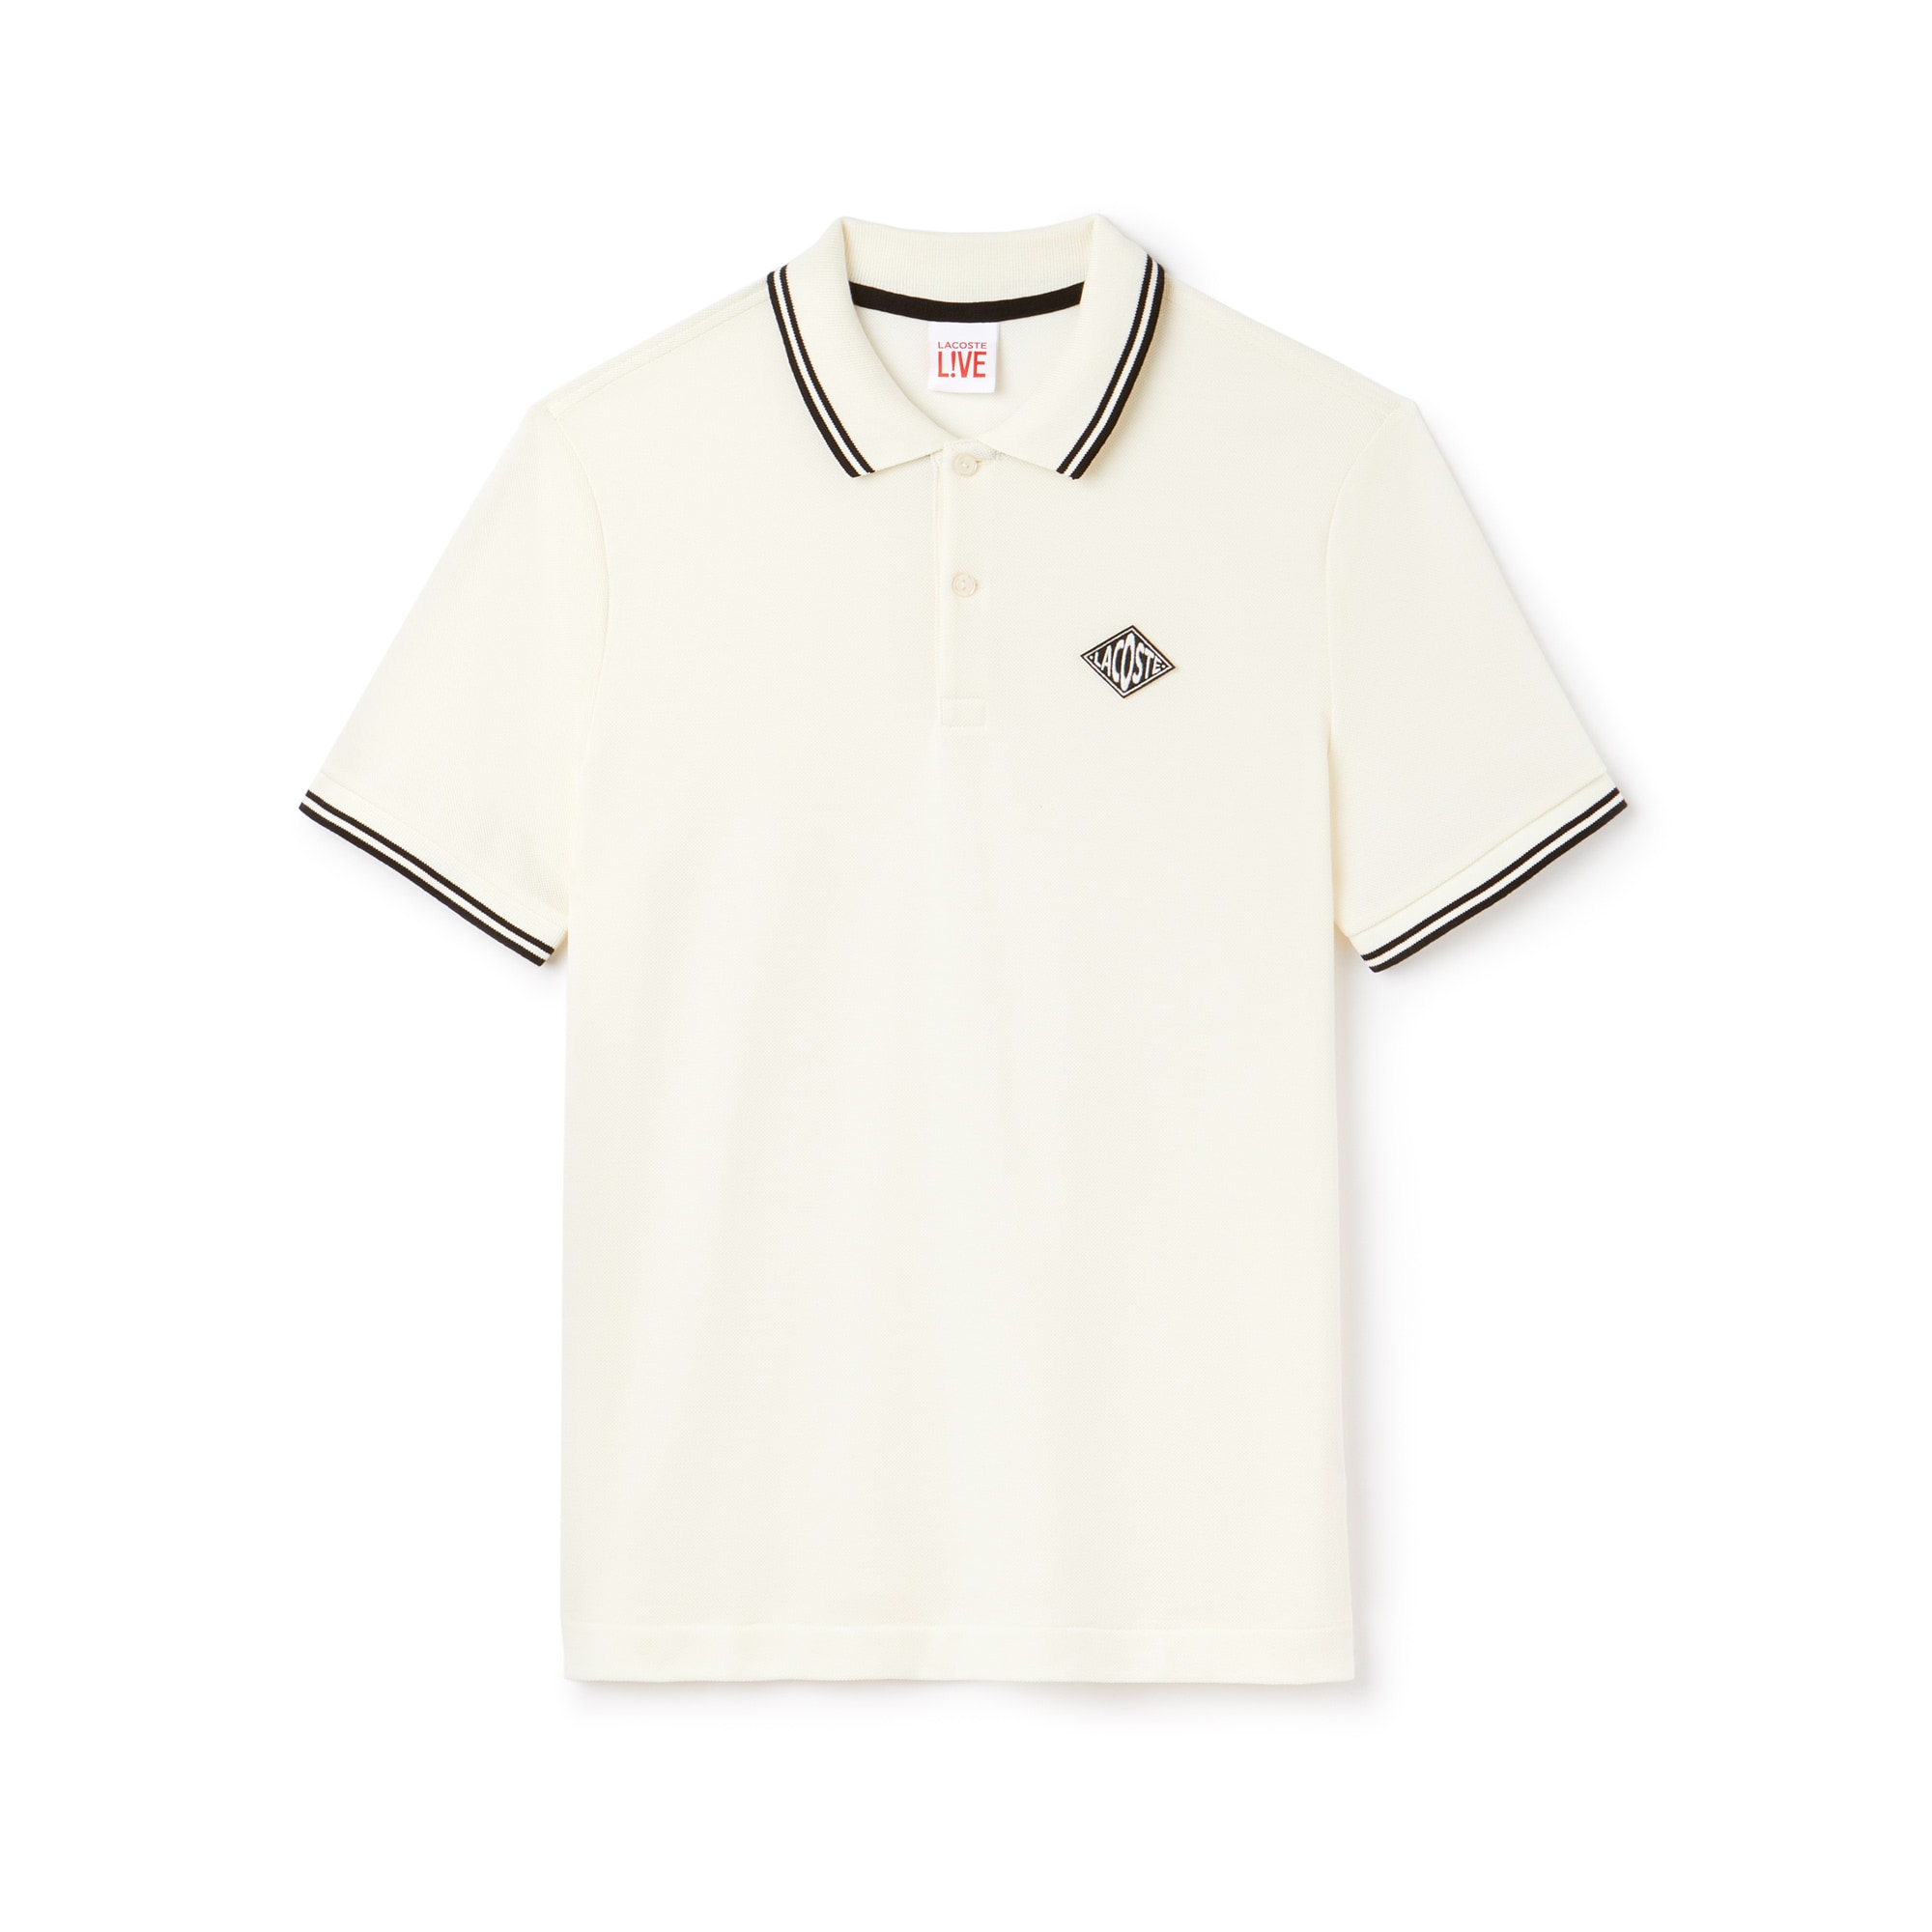 Men's Lacoste LIVE Slim Fit Bands And Badge Cotton Petit Piqué Polo